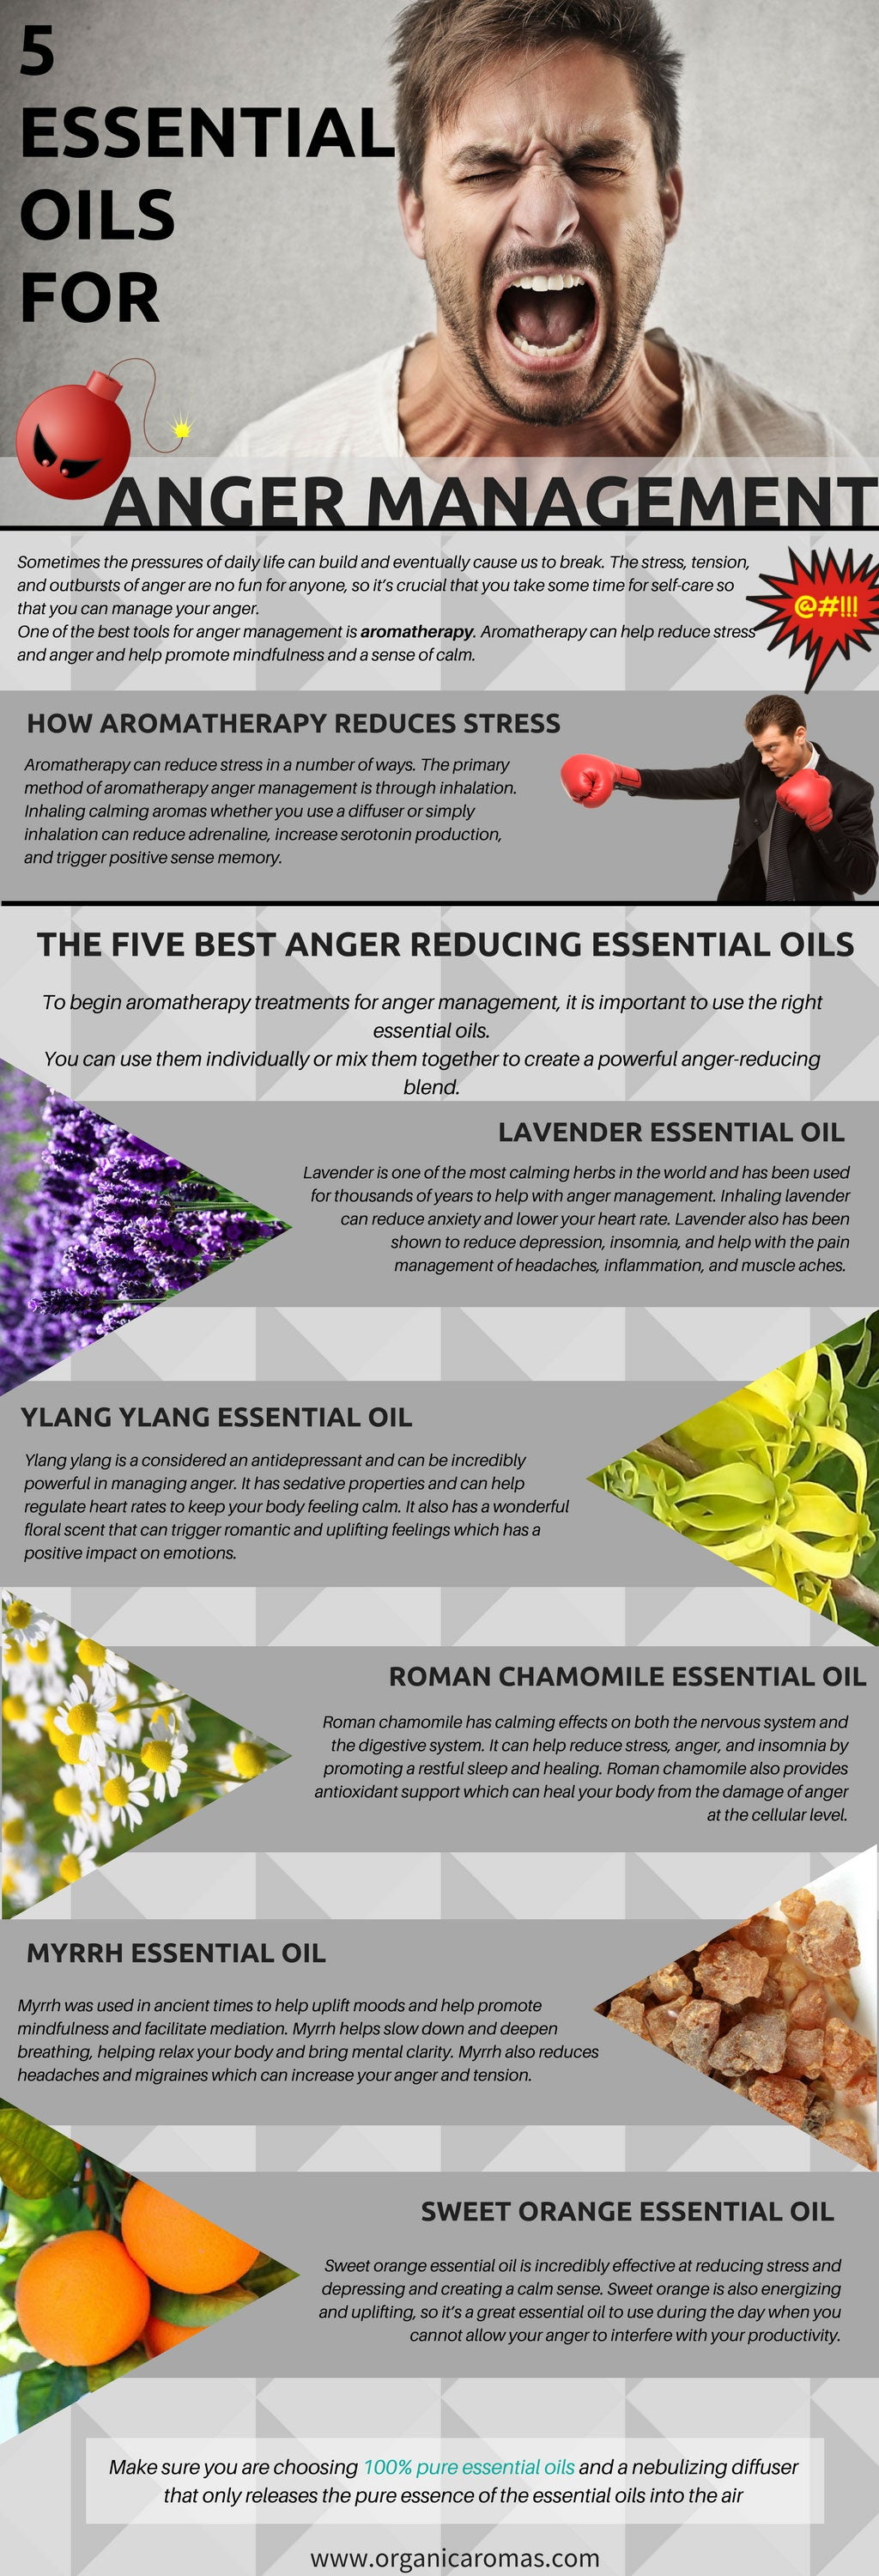 5 Essential Oils For Anger Management Organic Aromas